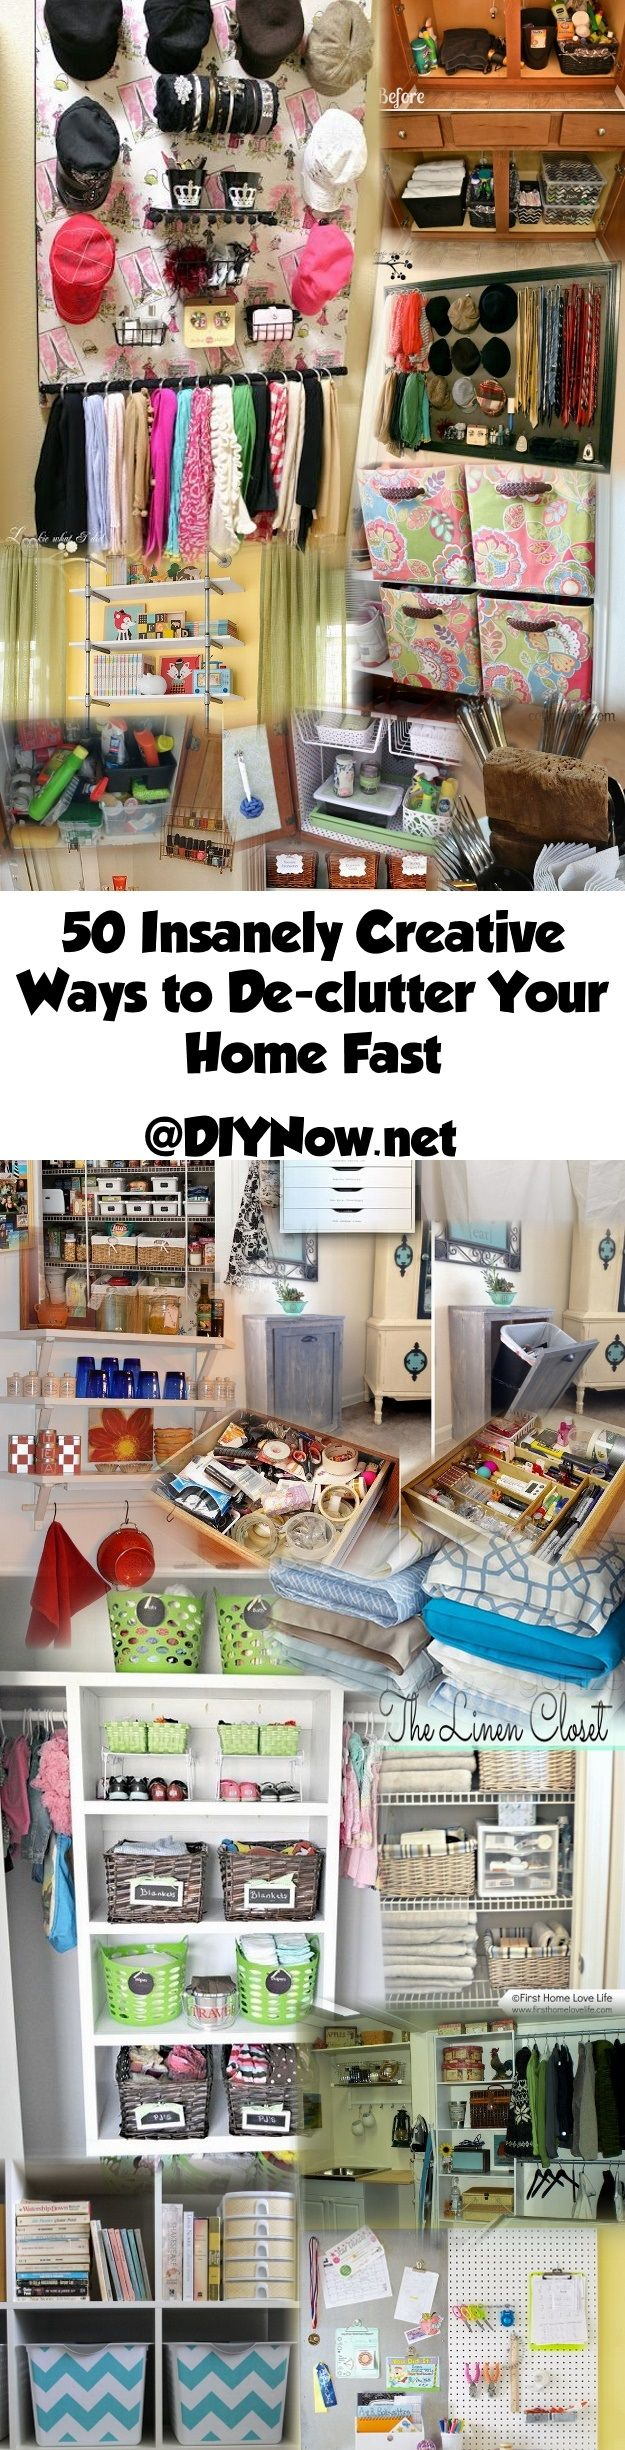 50 Insanely Creative Ways to De-clutter Your Home Fast